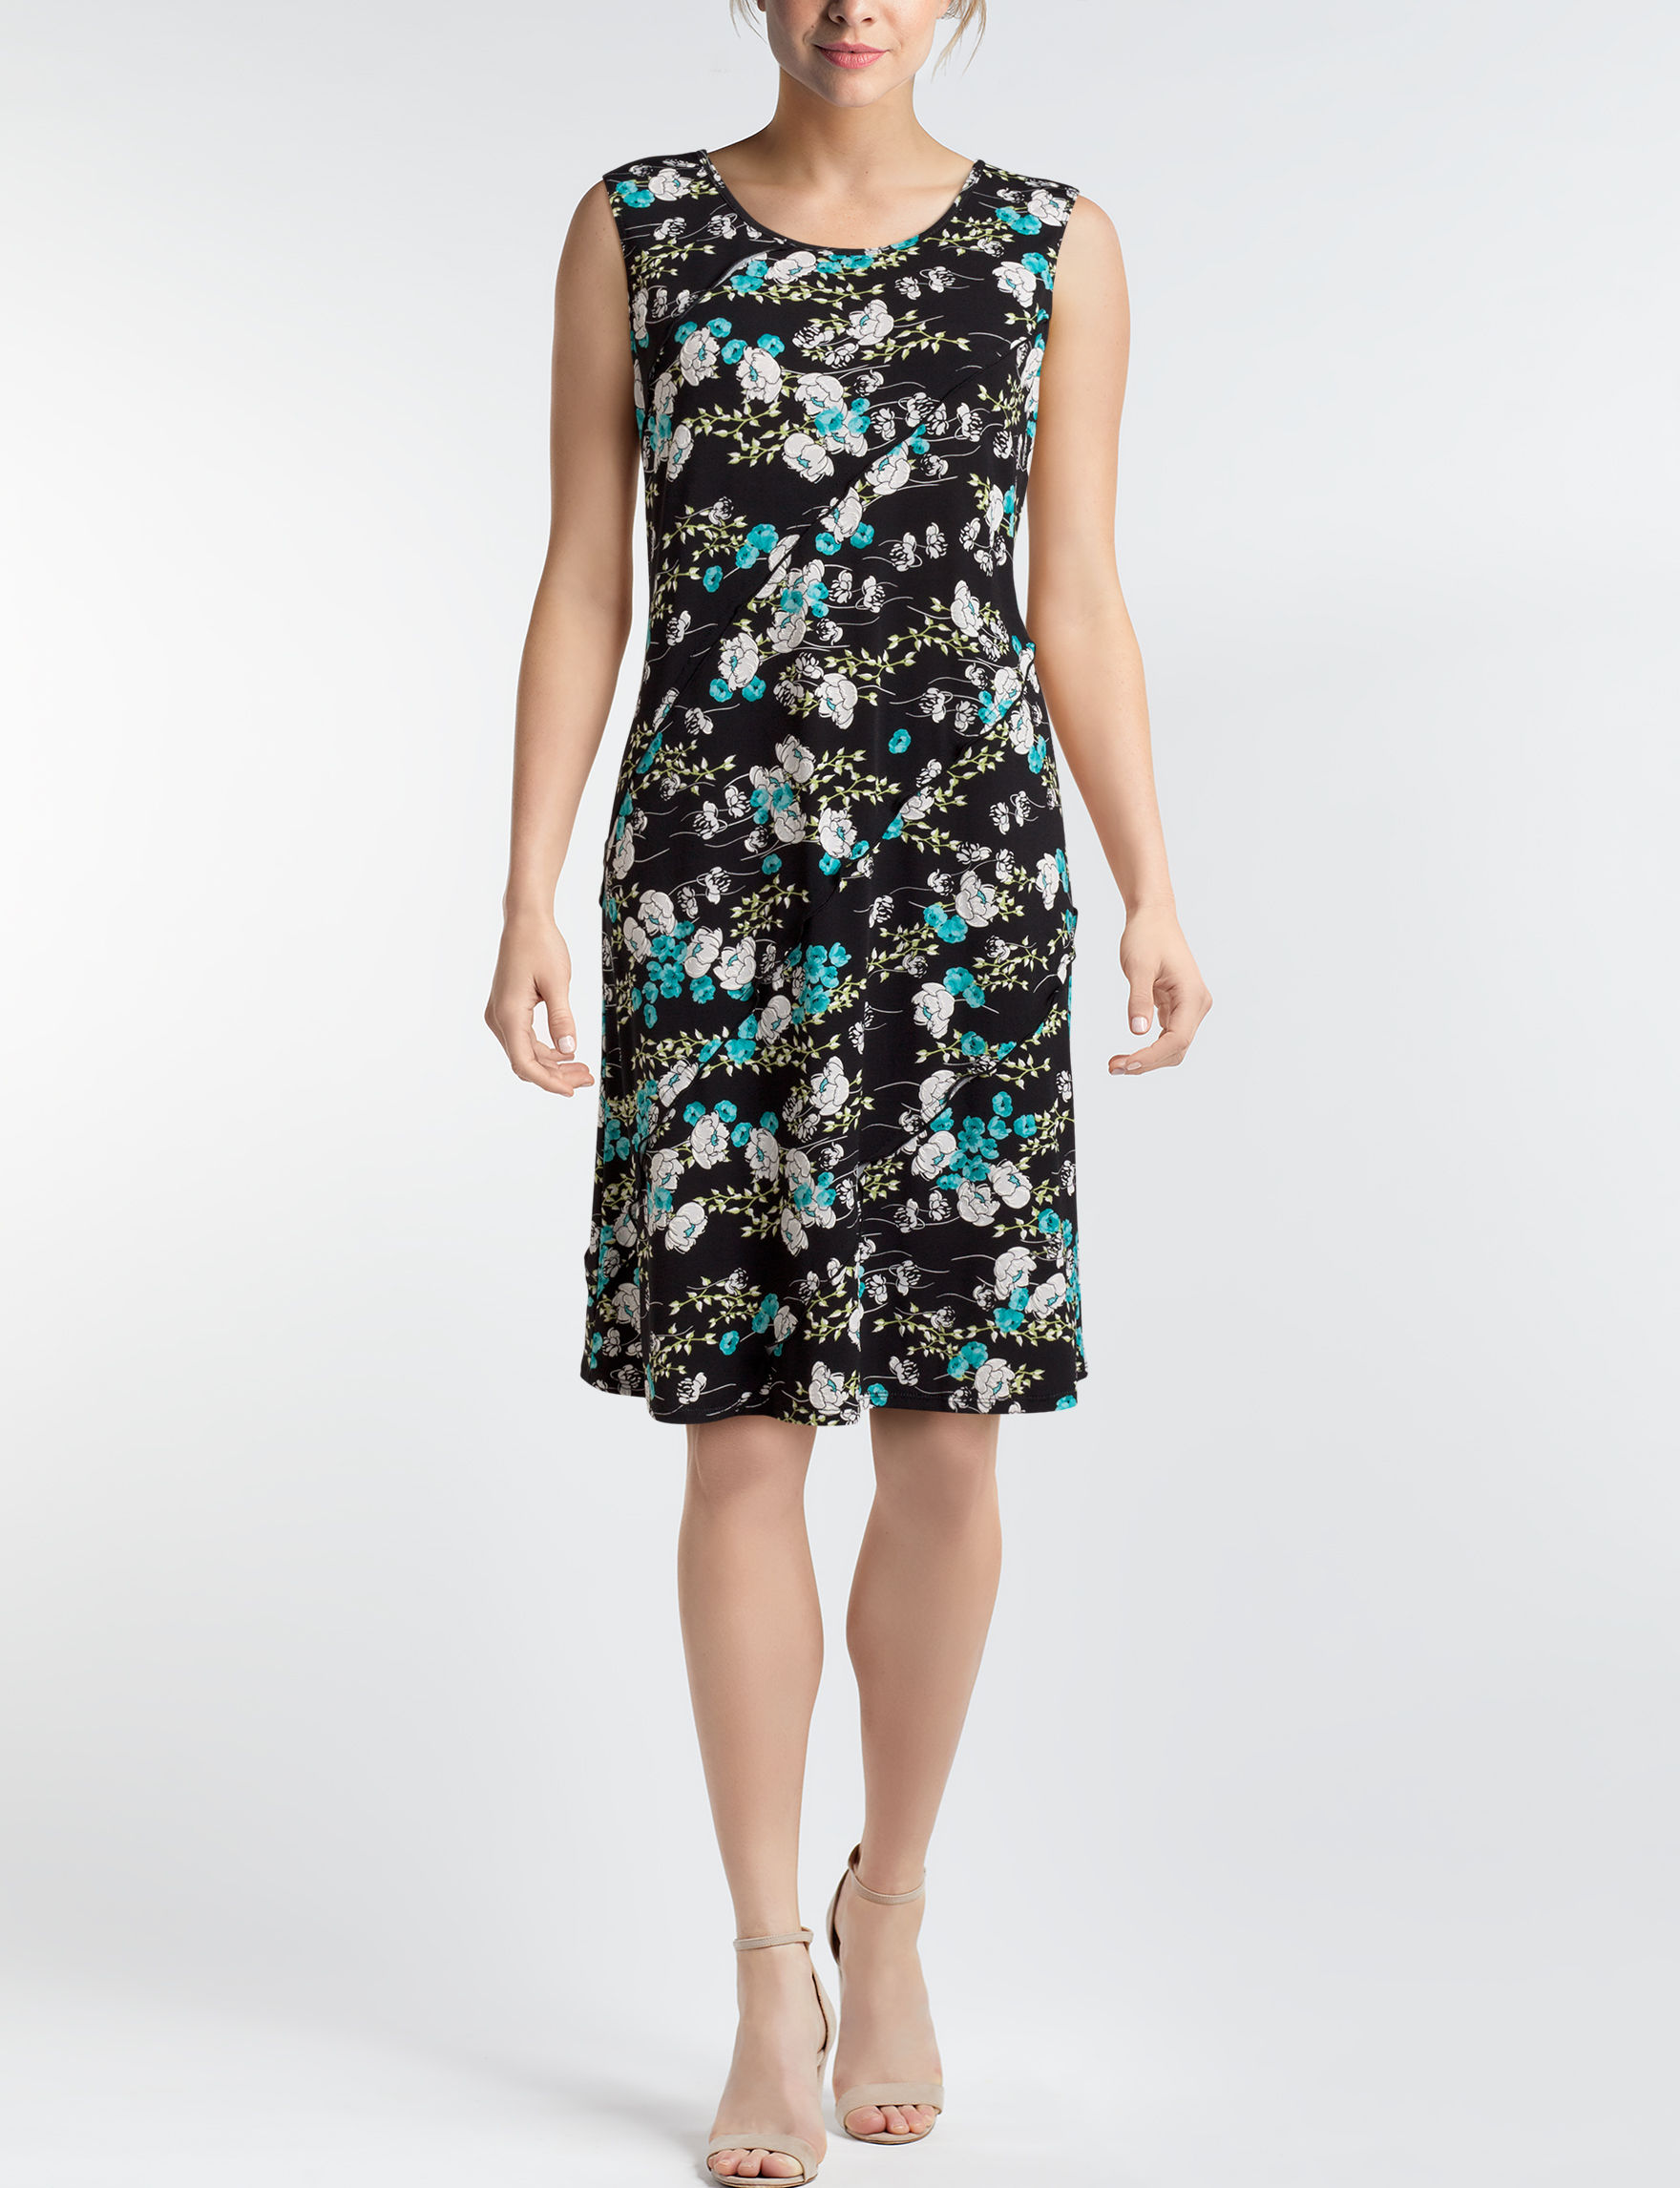 Perceptions Black Floral Everyday & Casual A-line Dresses Fit & Flare Dresses